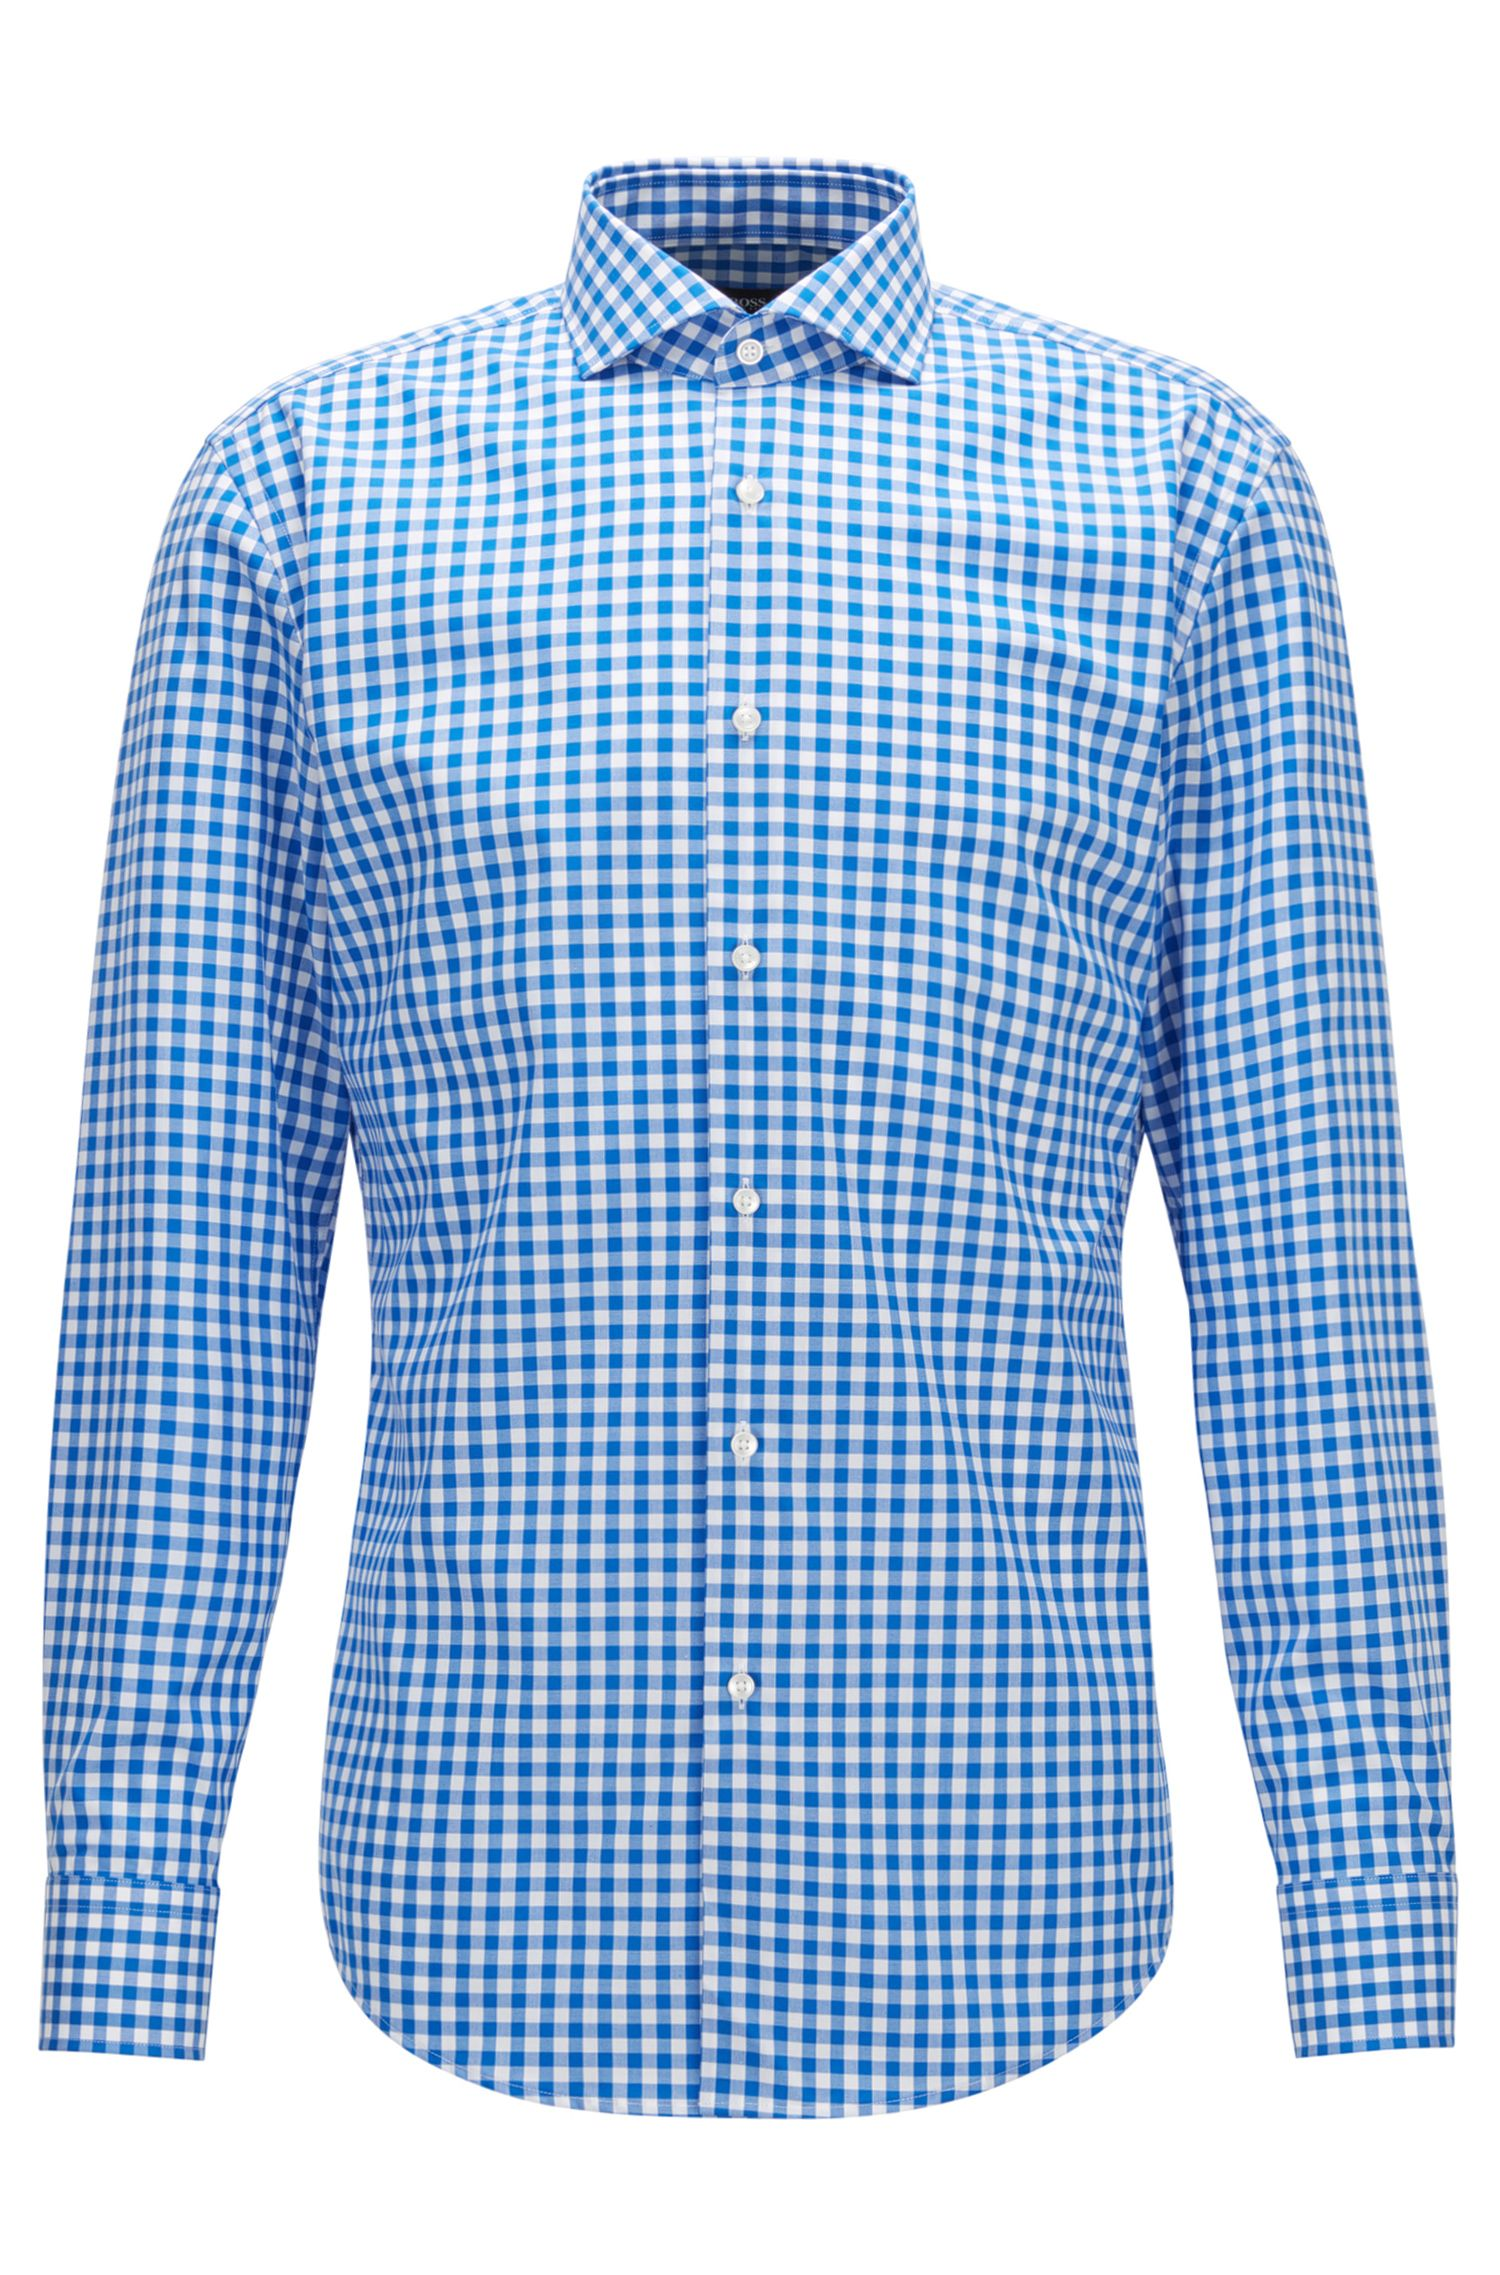 Gingham Cotton Dress Shirt, Slim Fit | Jason